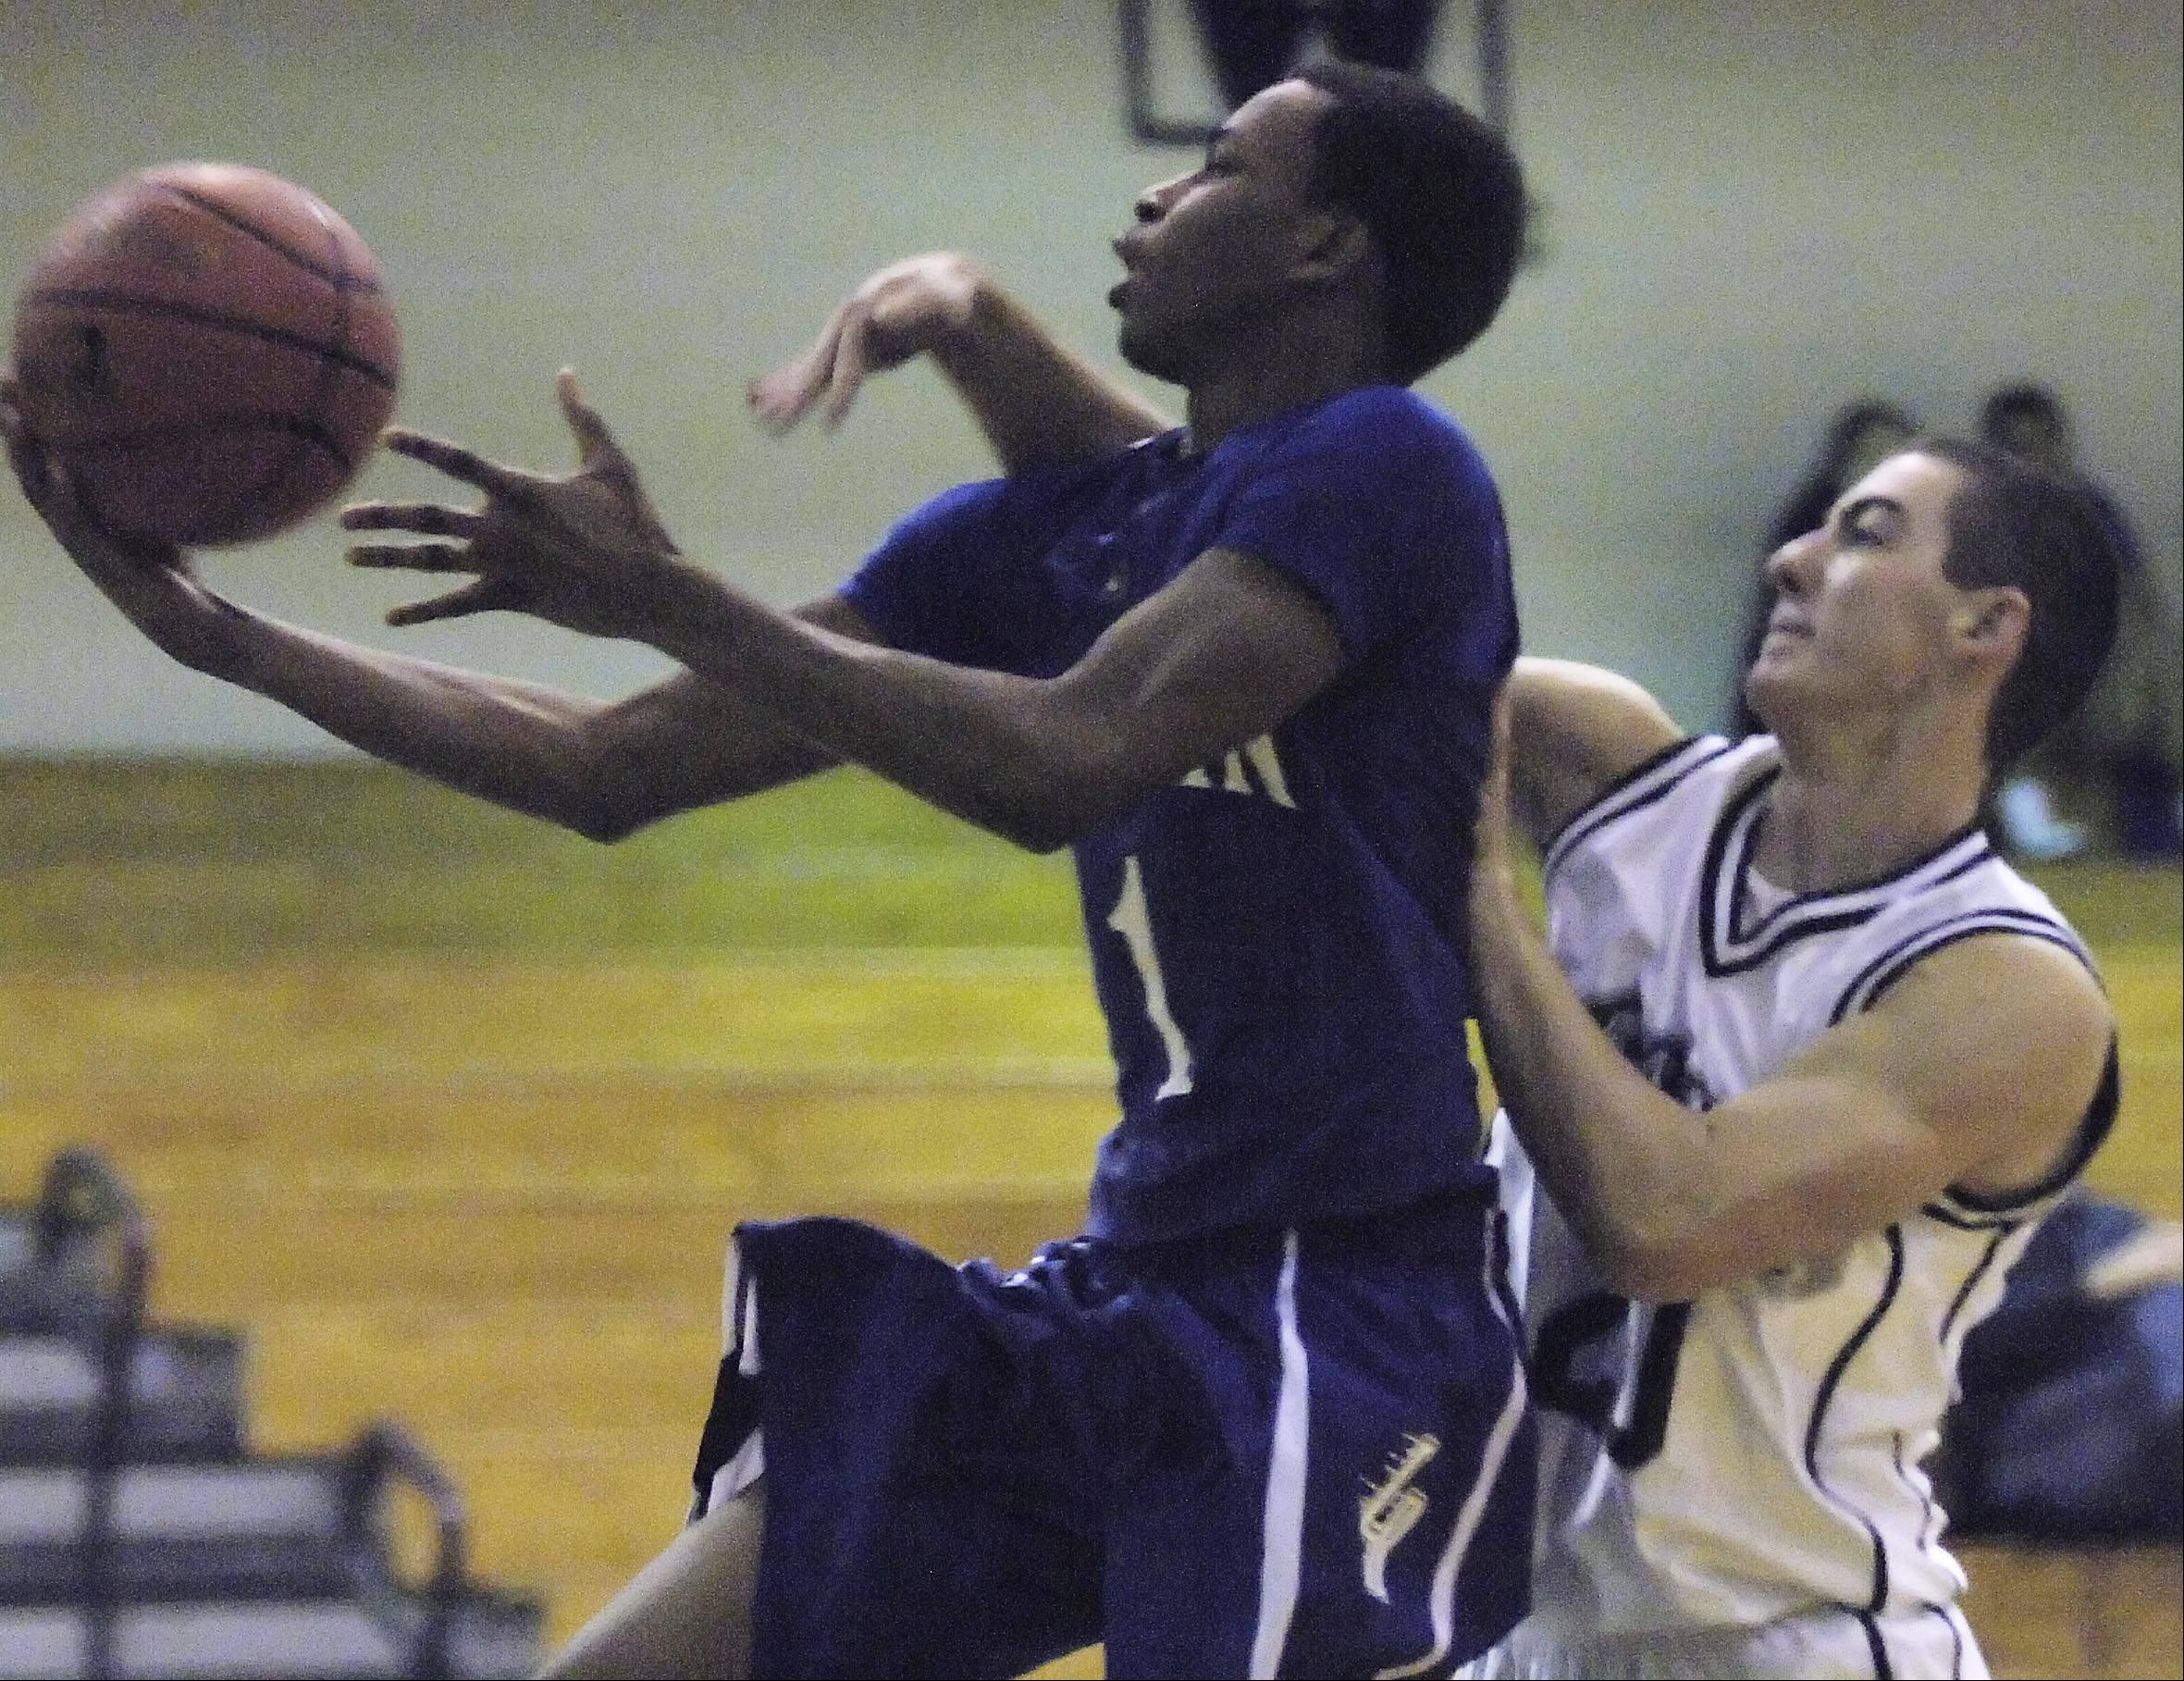 Cary-Grove�s Clay Marunde fouls Larkin�s Quantice Hunter Tuesday in the Hoops for Healing Tournament in Woodstock.